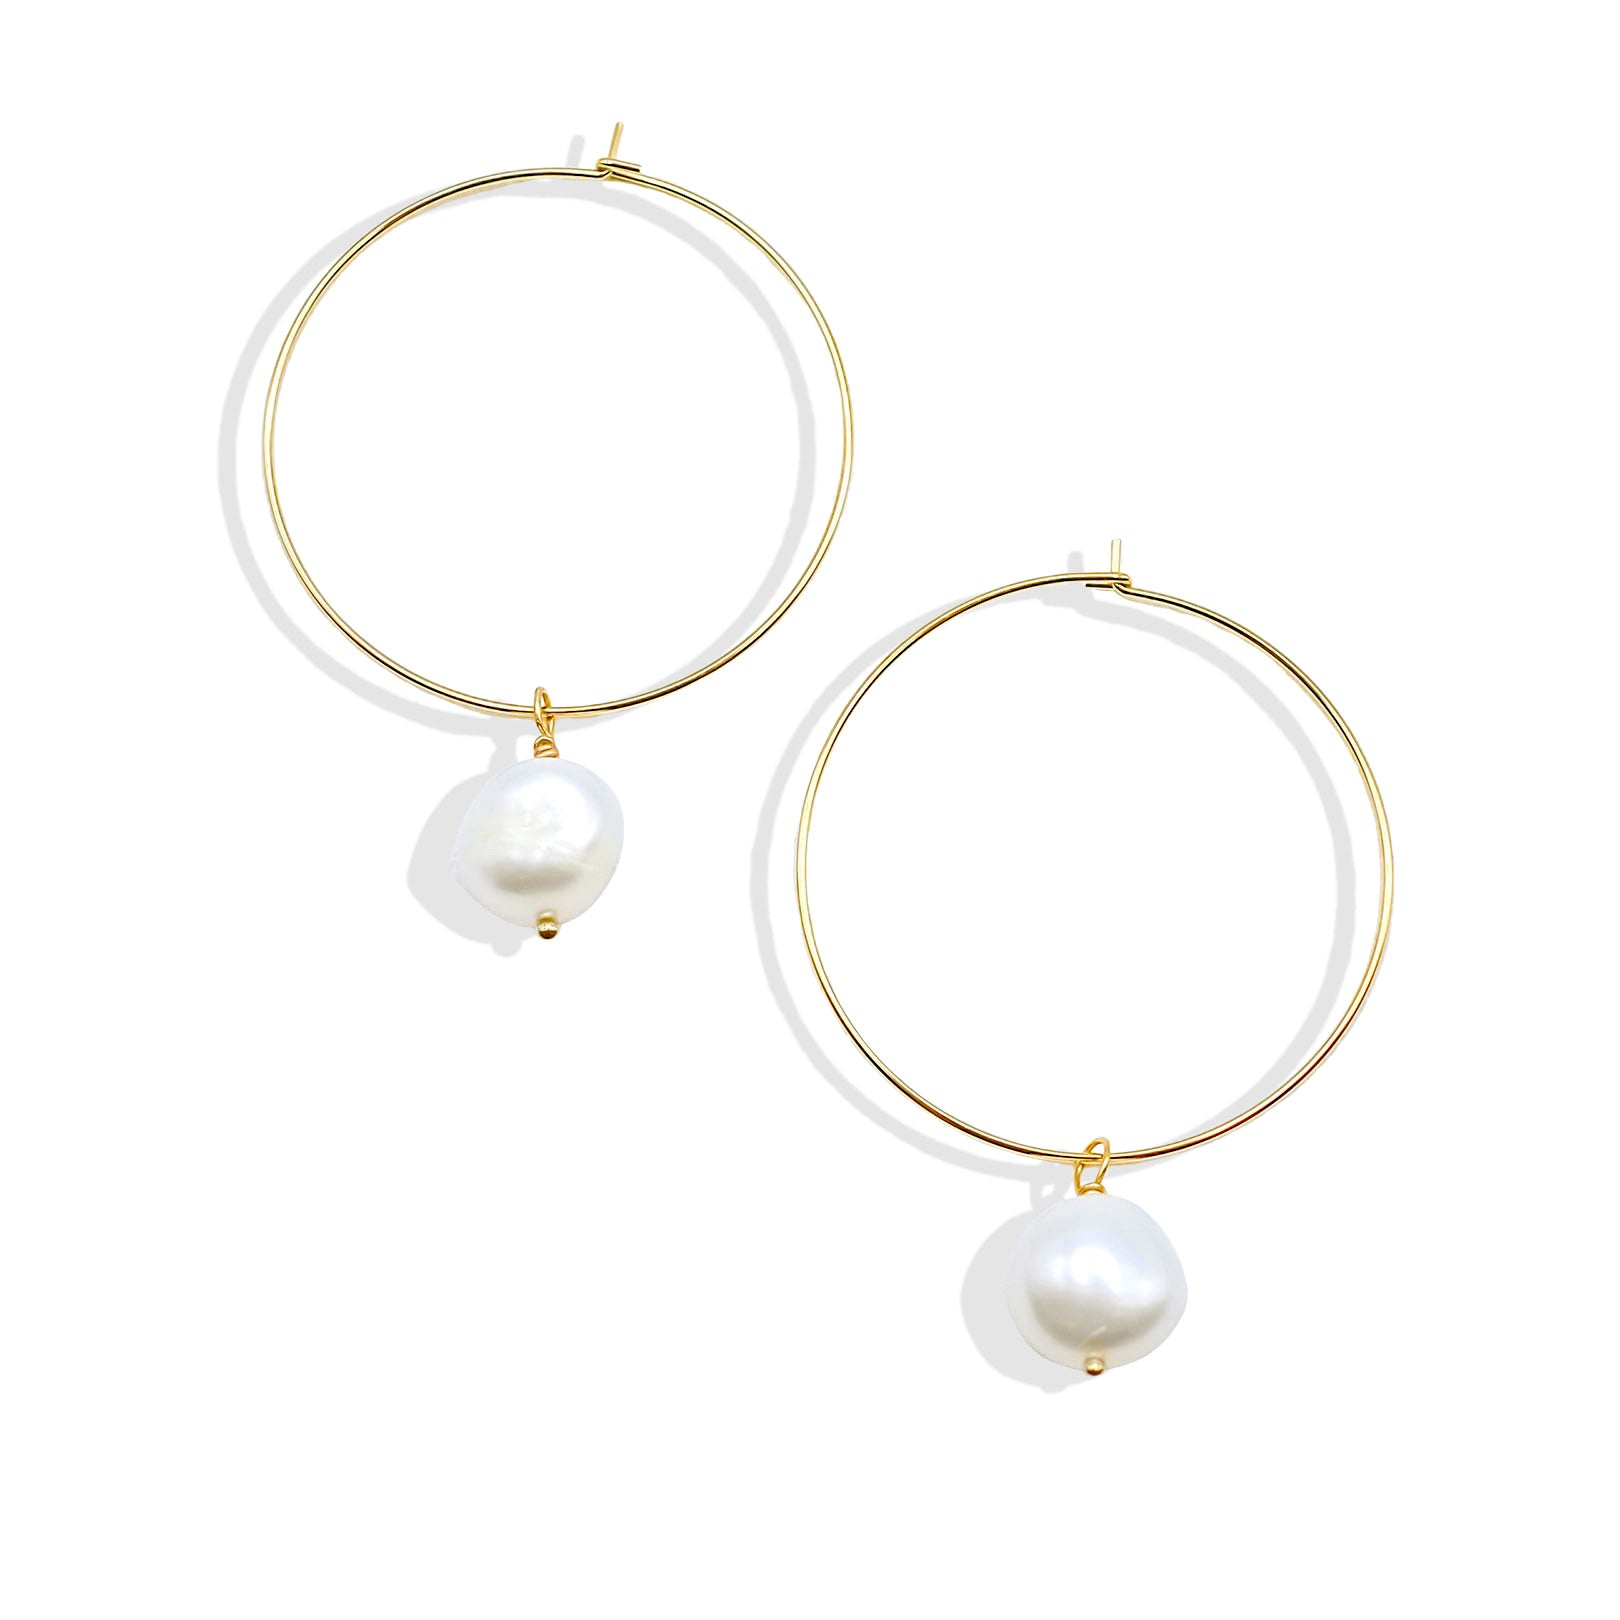 White Freshwater Pearl Hoop Earring - IT STYLE BOX